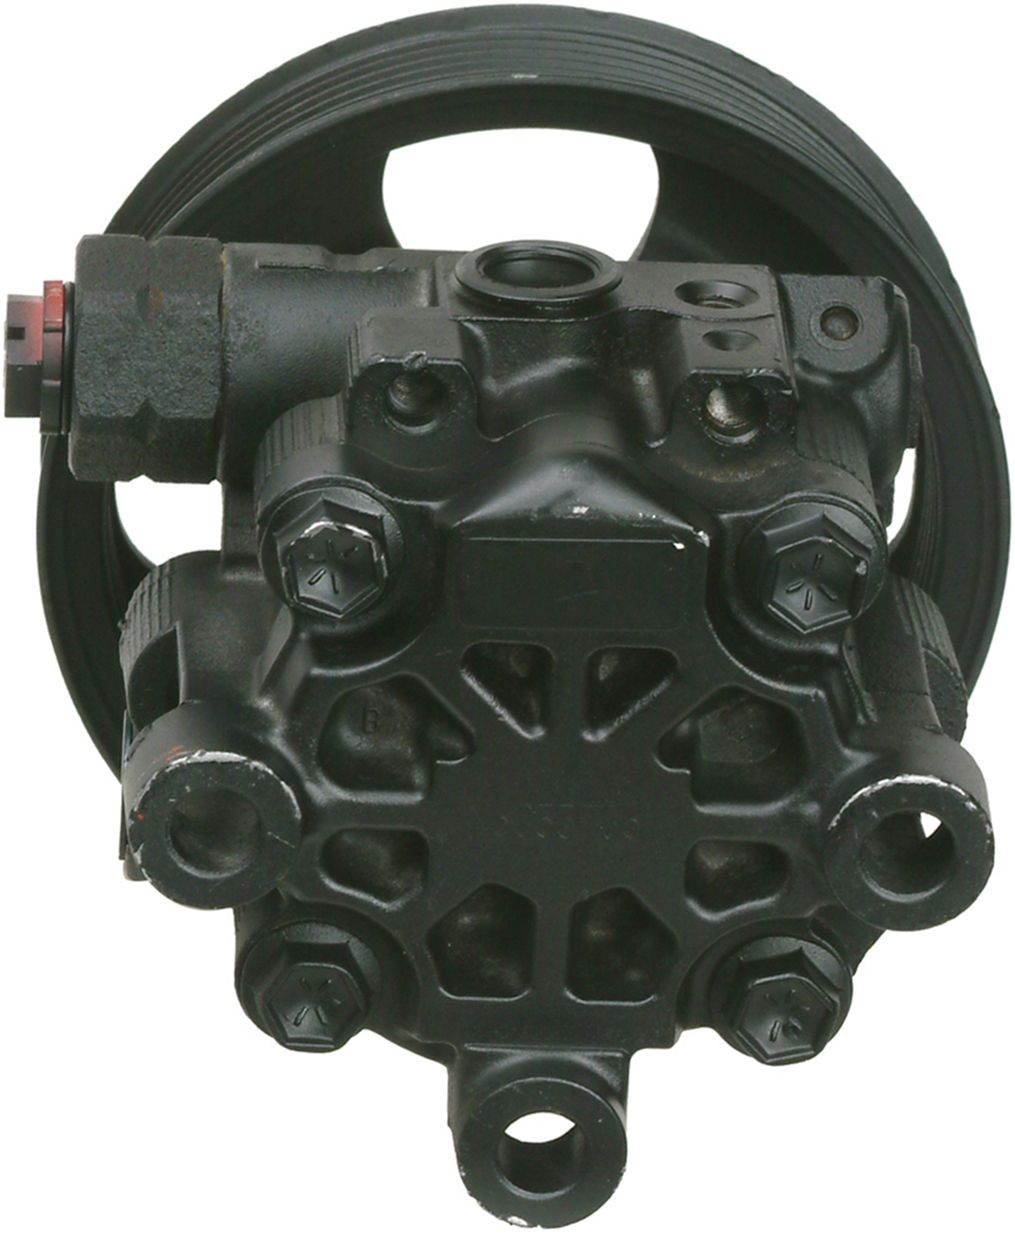 Cardone 21-5498 Remanufactured Import Power Steering Pump A1 Cardone